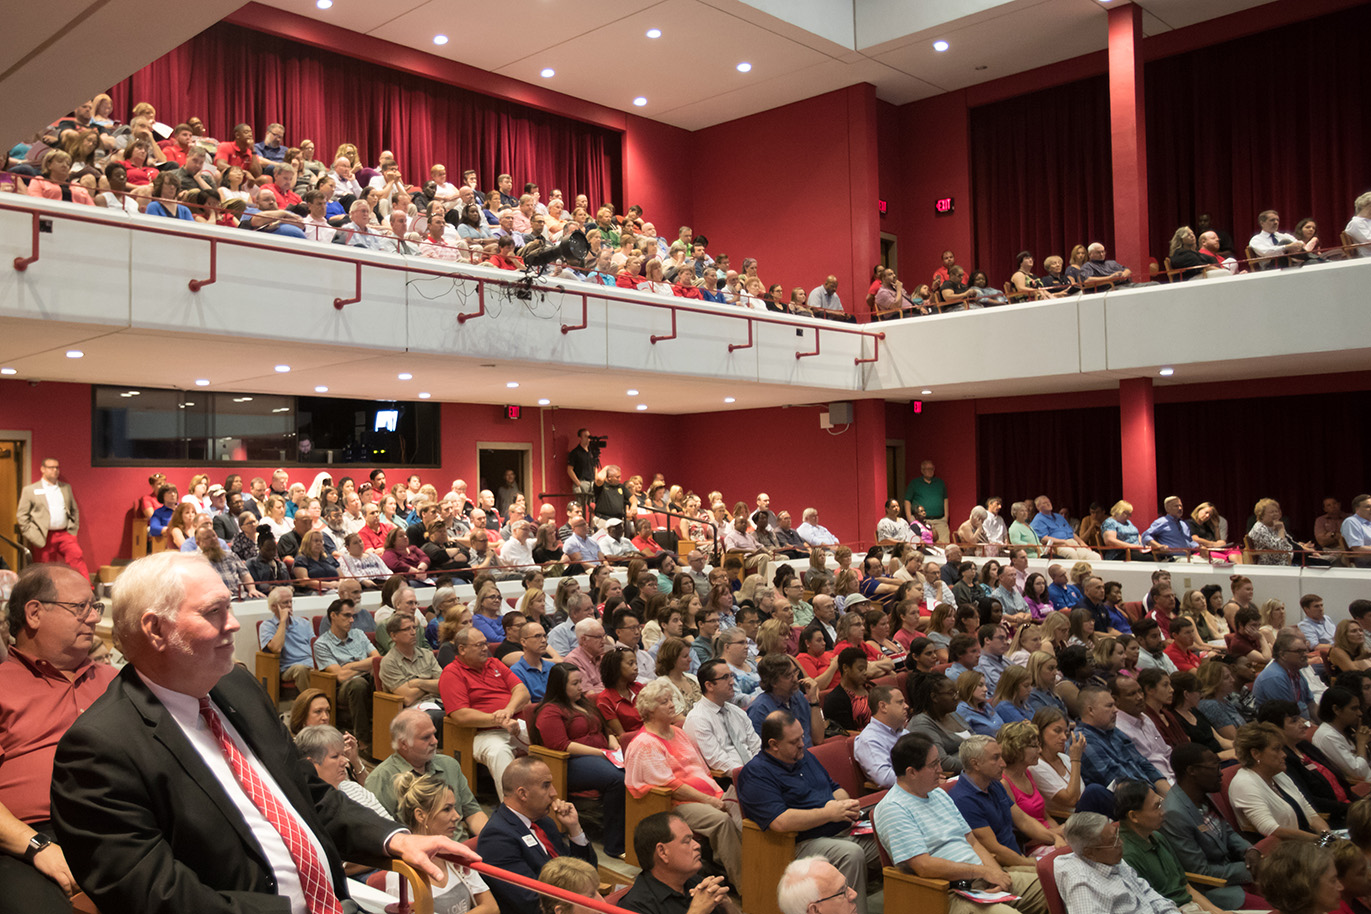 Faculty and staff members sit in Mabry auditorium